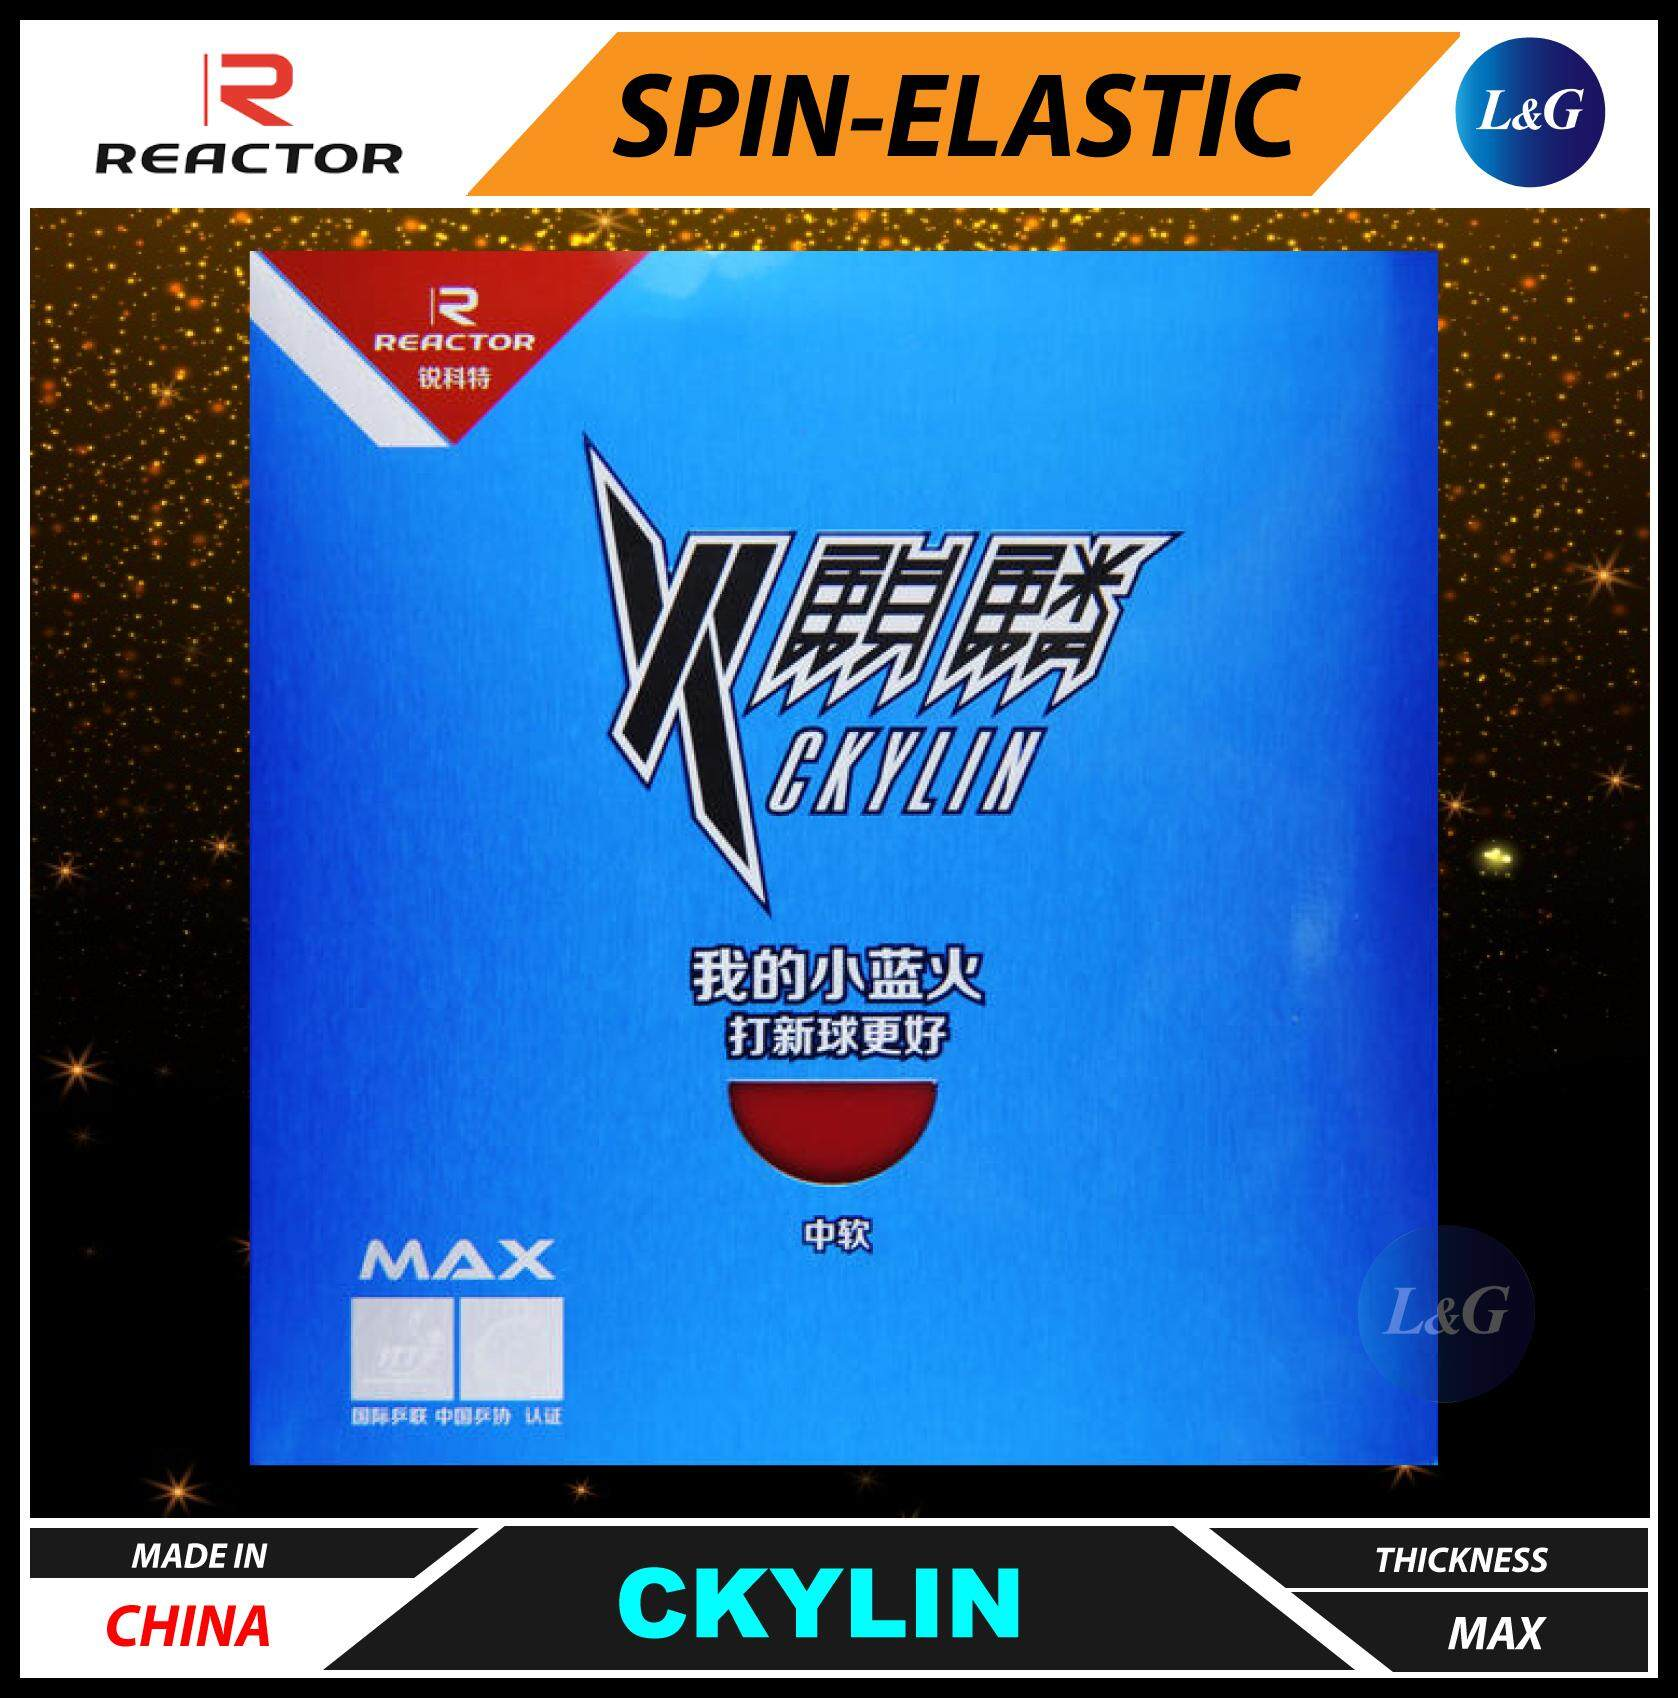 Reactor Ckylin Spin-Elastic Inverted Table Tennis Ping Pong Rubber Max ITTF Approved